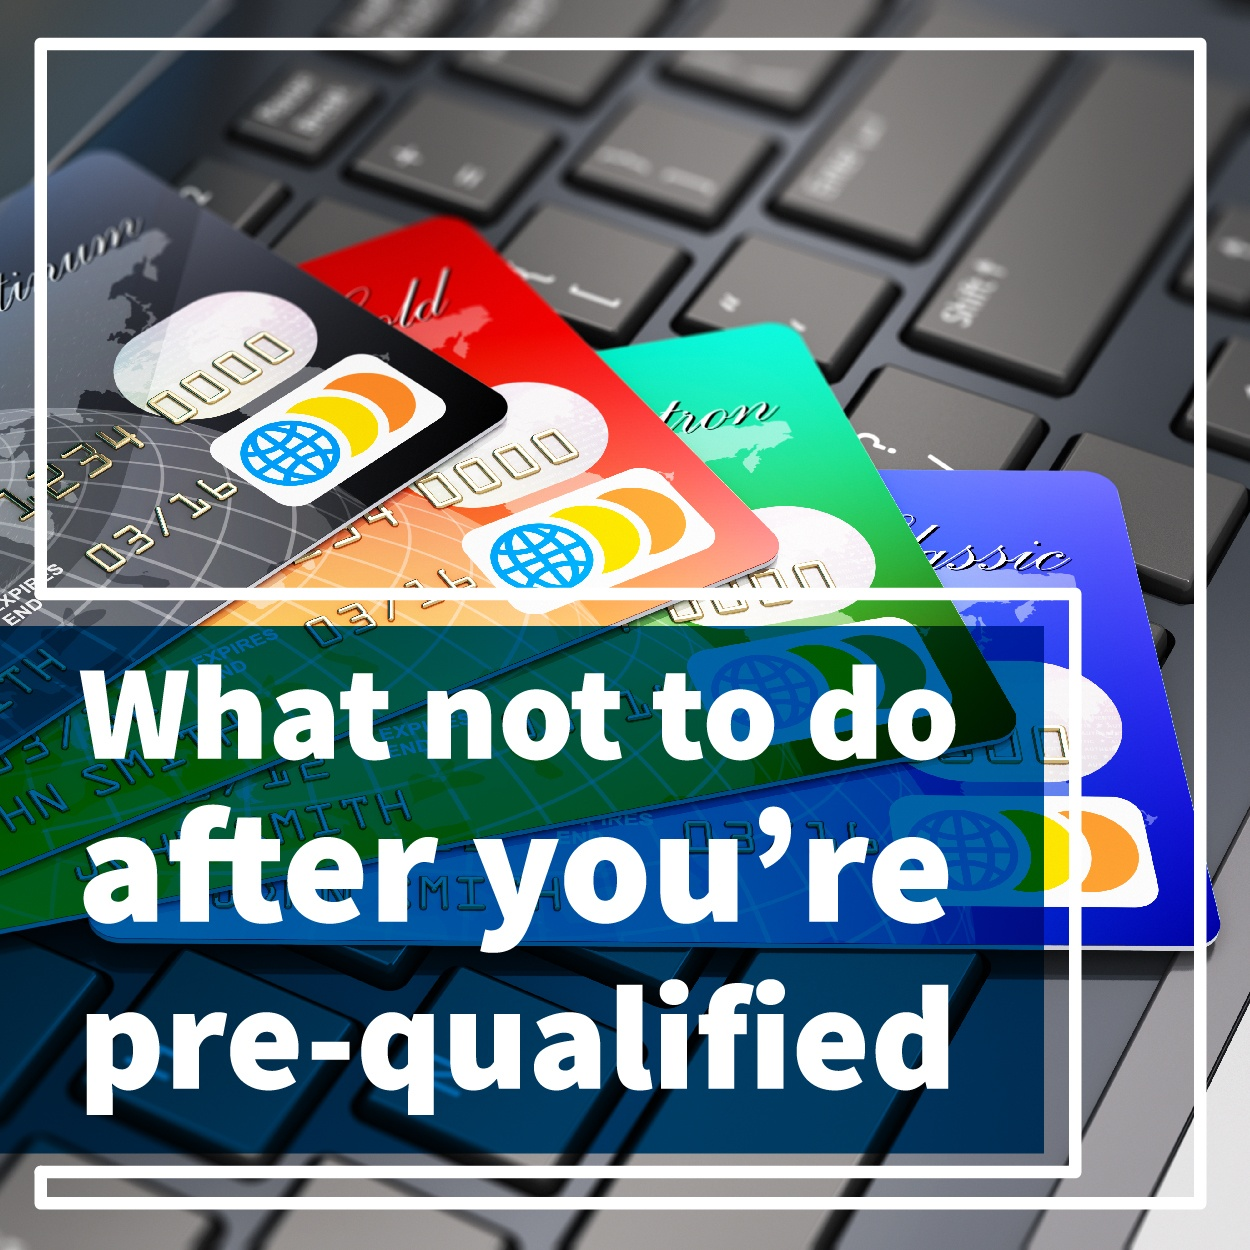 What_not_to_do_after_youre_prequalified-01